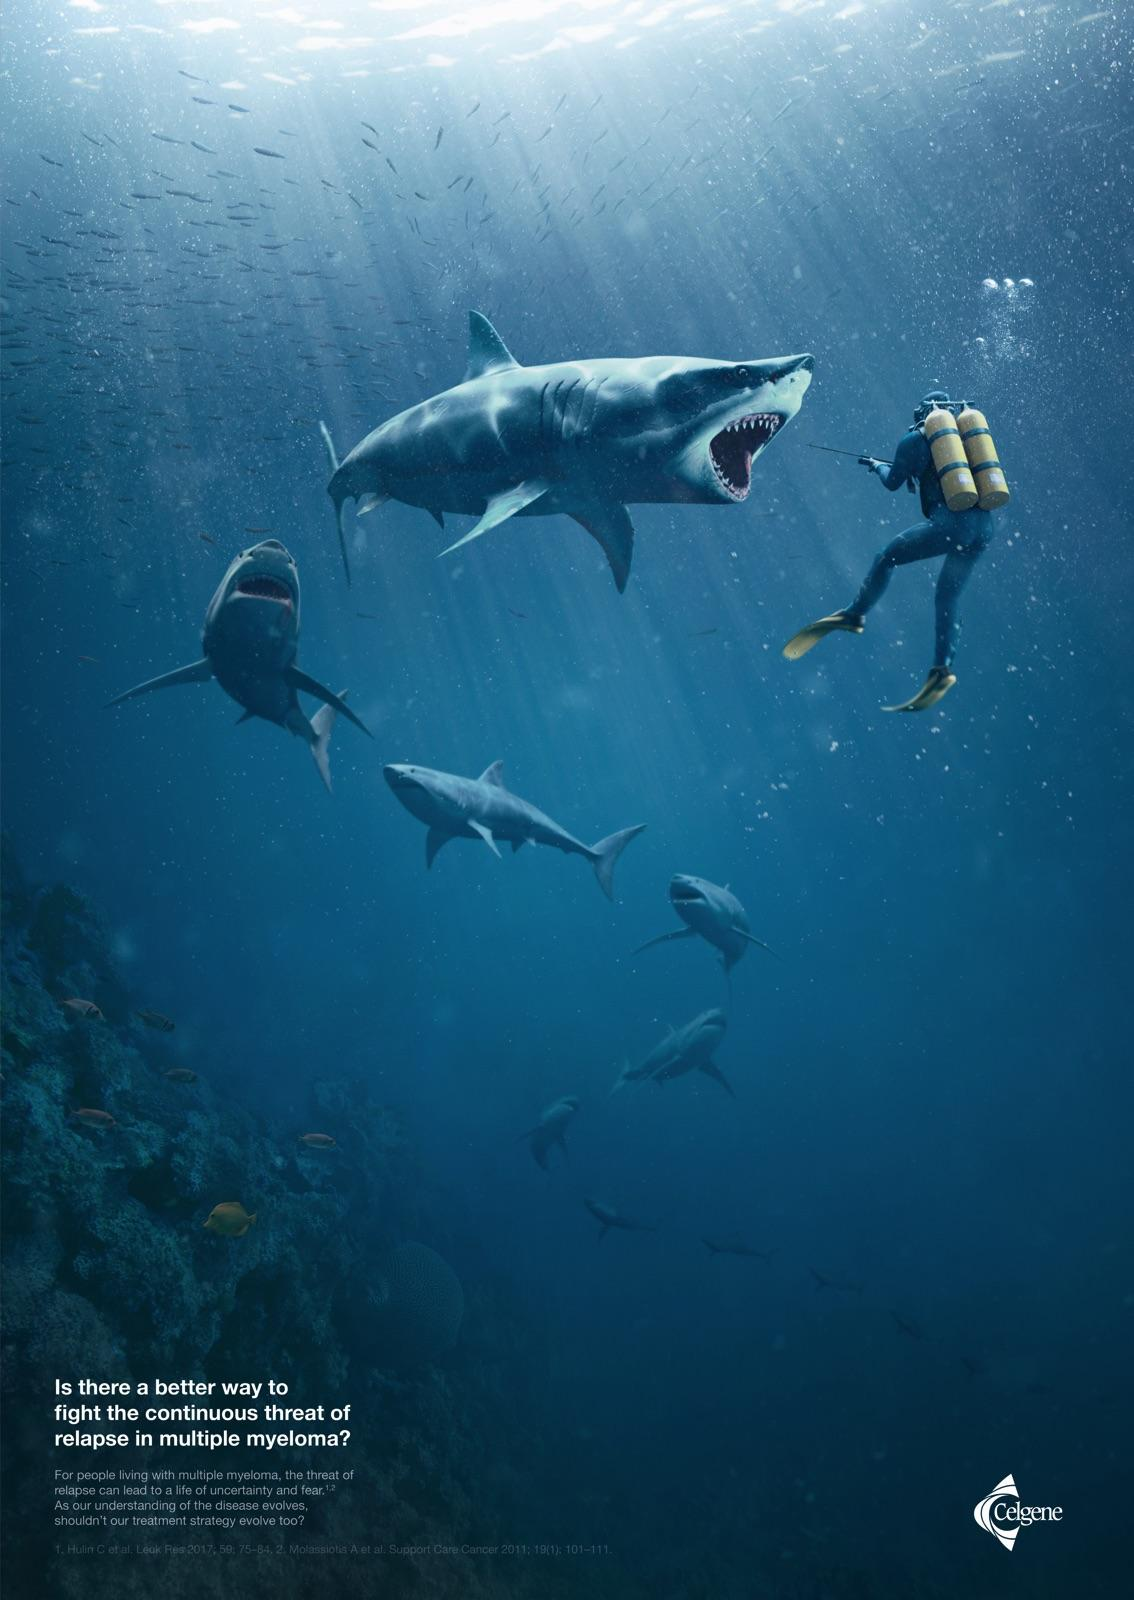 Celgene Print Ad - Continuous Threat - Sharks